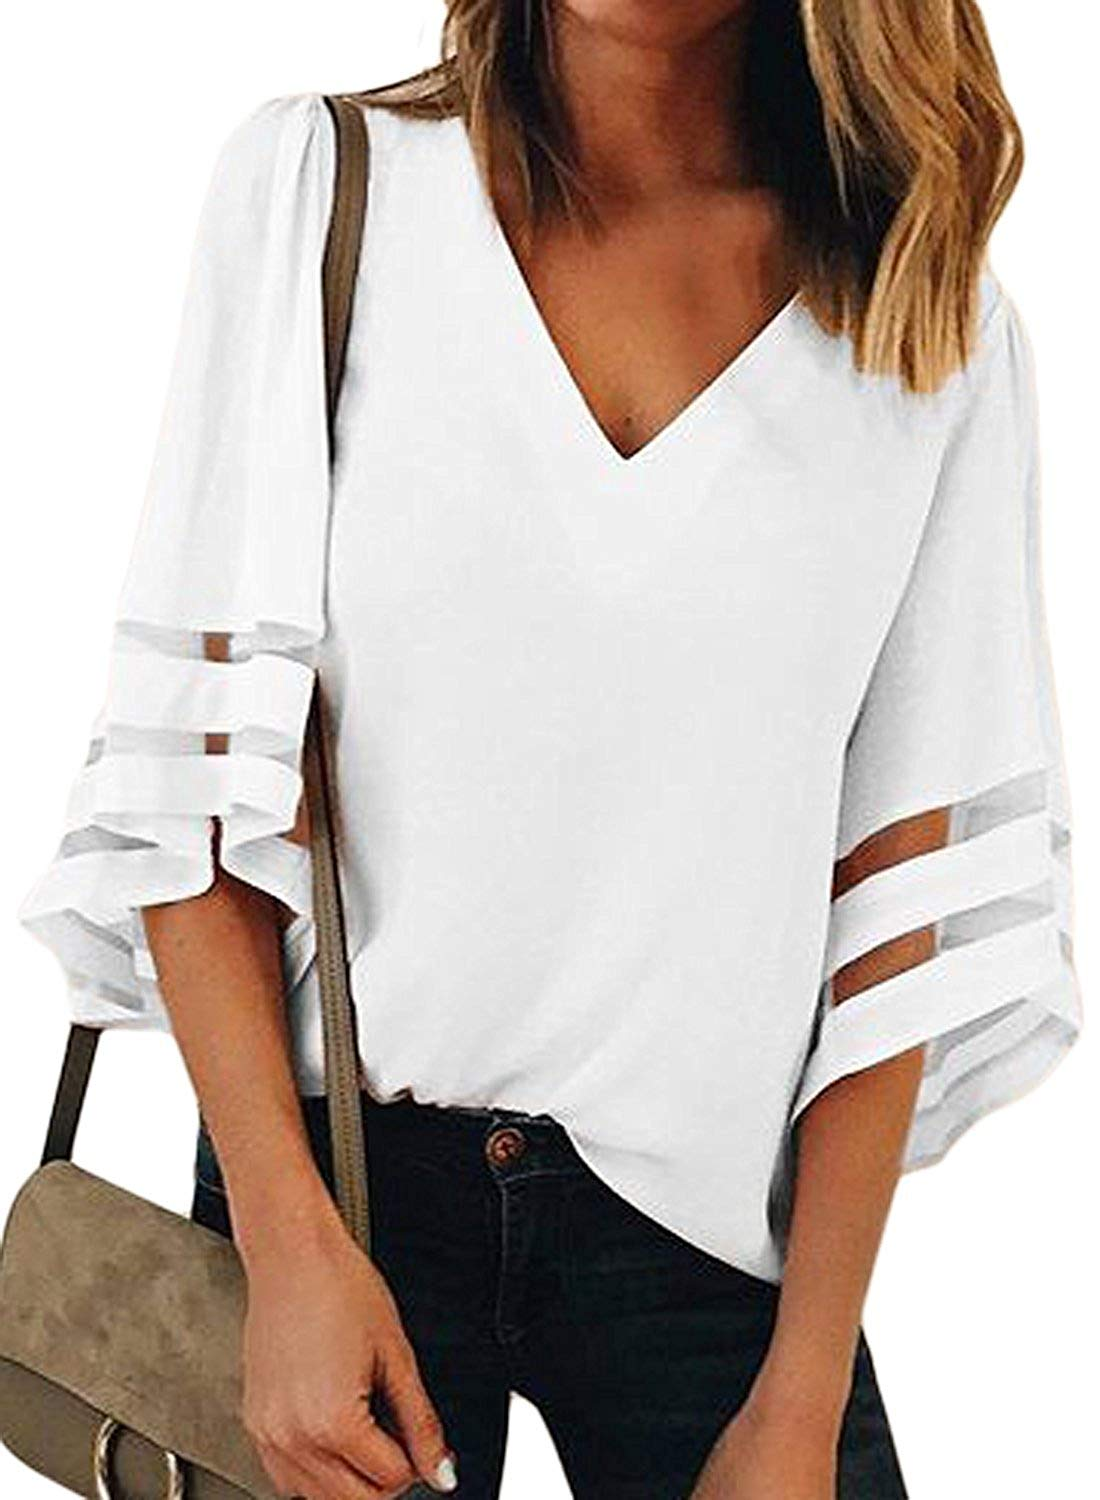 Charlotte Womens 3/4 Bell Sleeve V Neck Lace Patchwork Blouse Casual Loose Shirt Tops Flare Sleeve Tops Bouse